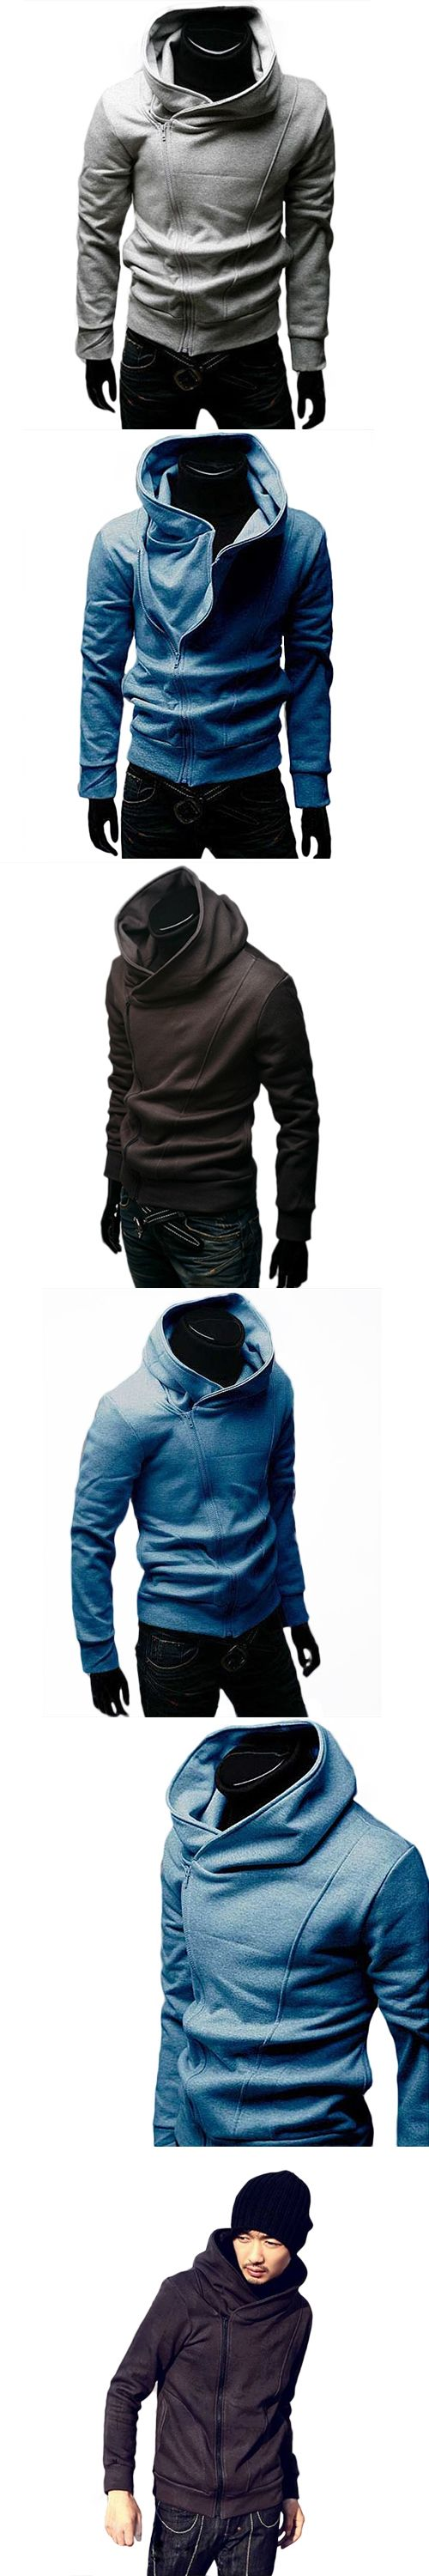 Hot British Style Men's O-Neck Casual High Collar Fashion Personality Stayed Hooded Autumn Jacket Coat  5JEJ 7GNR